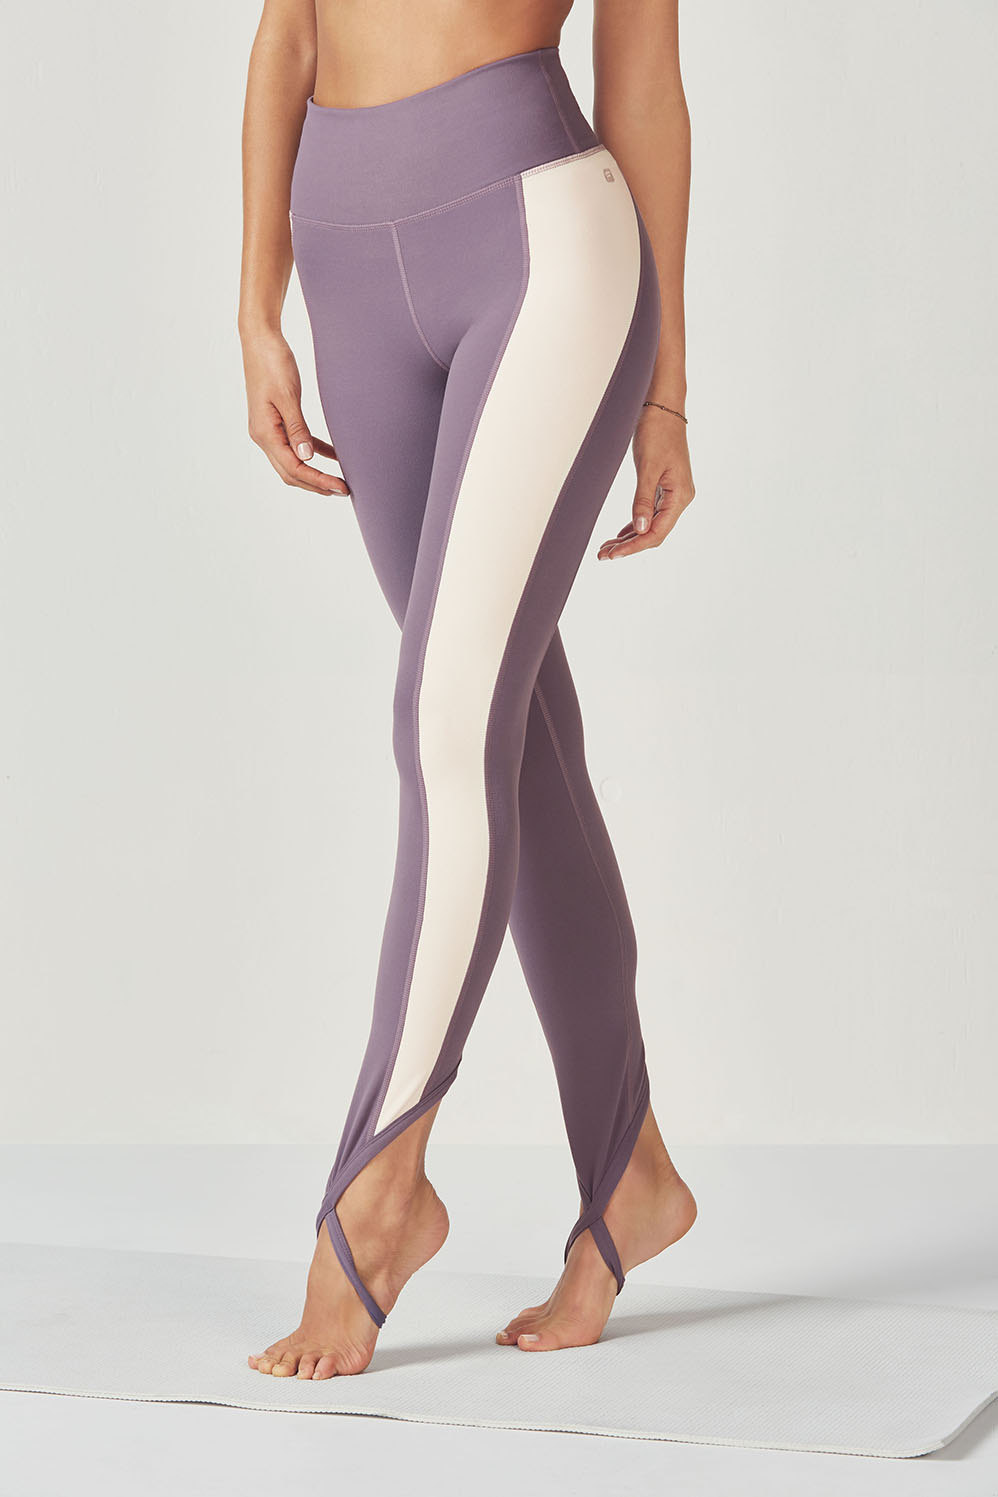 649587df34bbc Chara High Waist Stirrup Legging - Dove/Ivory